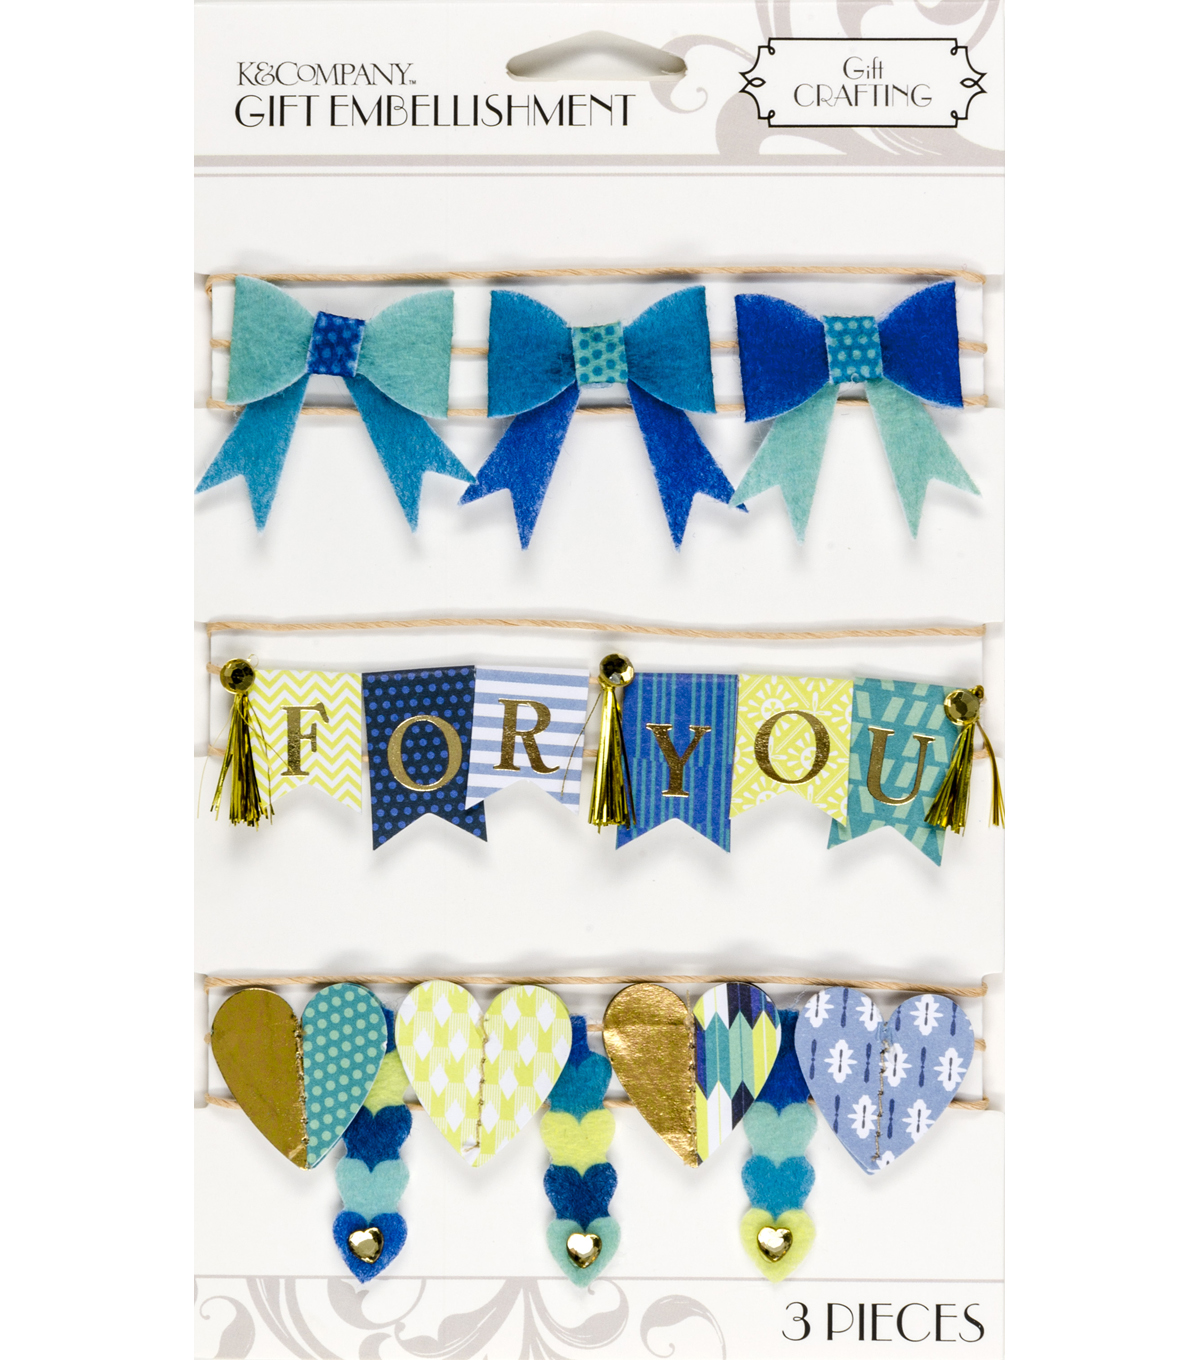 K&Company Cool Banner Gift Embellishment